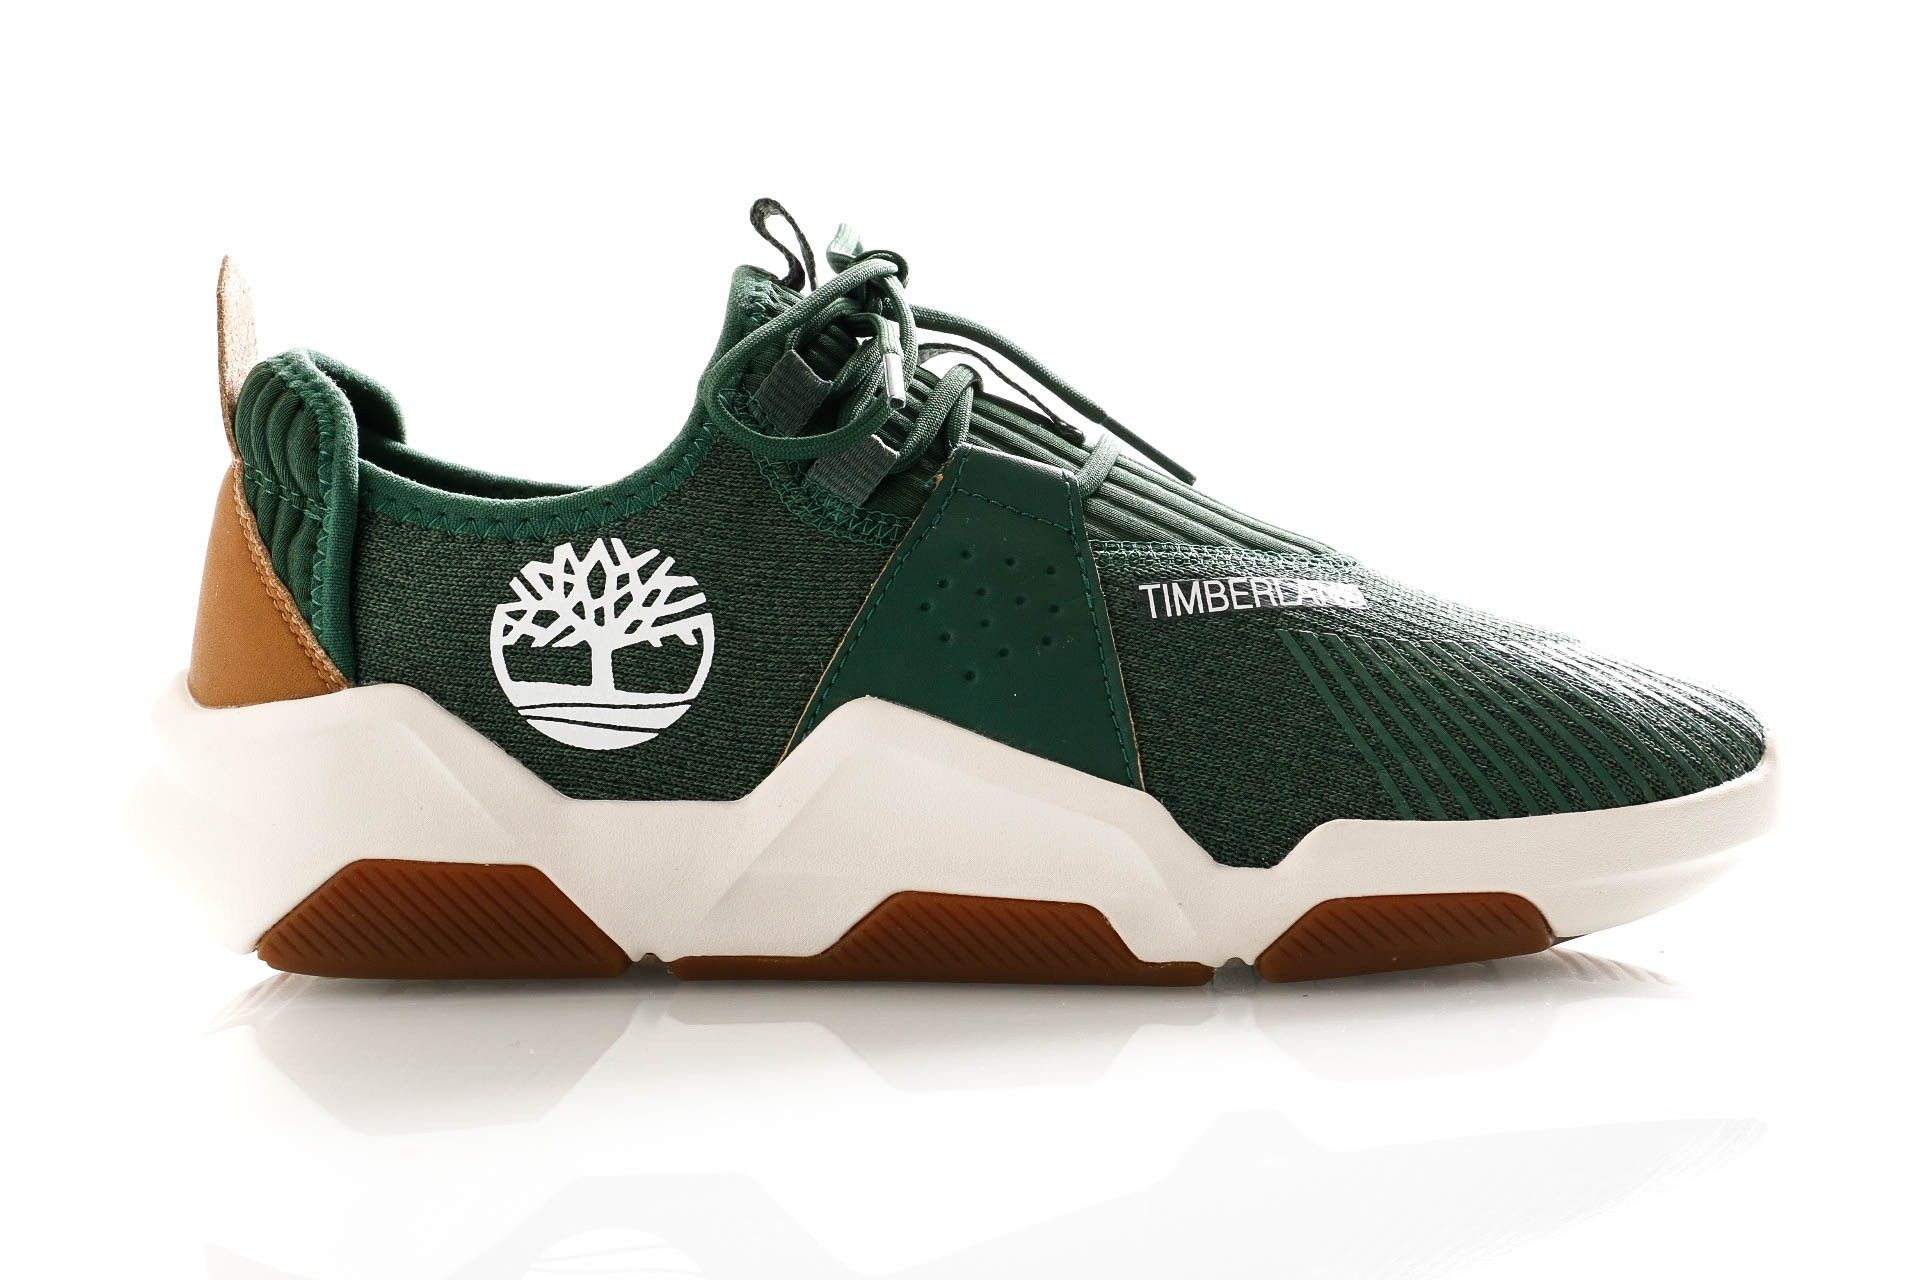 Afbeelding van Timberland Sneakers Earth Rally Flexiknit Ox Dark Green Knit TB0A29TXY181